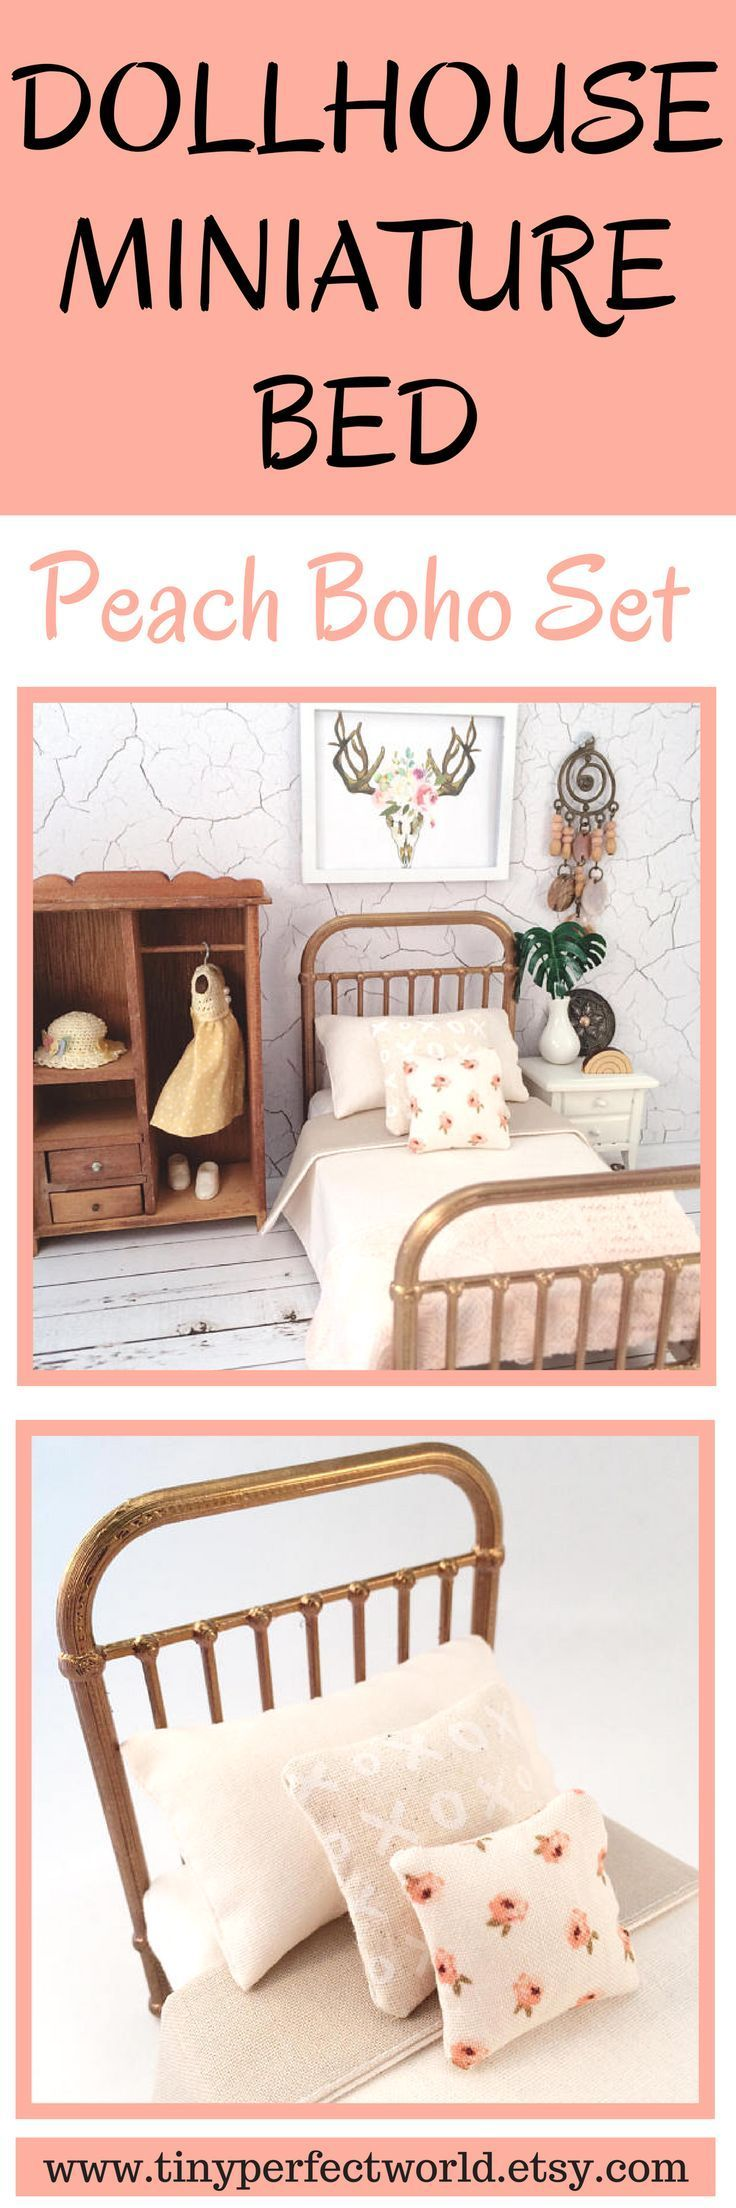 Miniature Bed, peach boho dollhouse bed, 1:12 scale modern bed, Incy Interiors Inspired miniature bed, modern miniature furniture.  Click to see details and for more dollhouse furniture from Tiny Perfect World. #dollhouseminiatures #dollhousefurniture #dollhouse #dollshouse